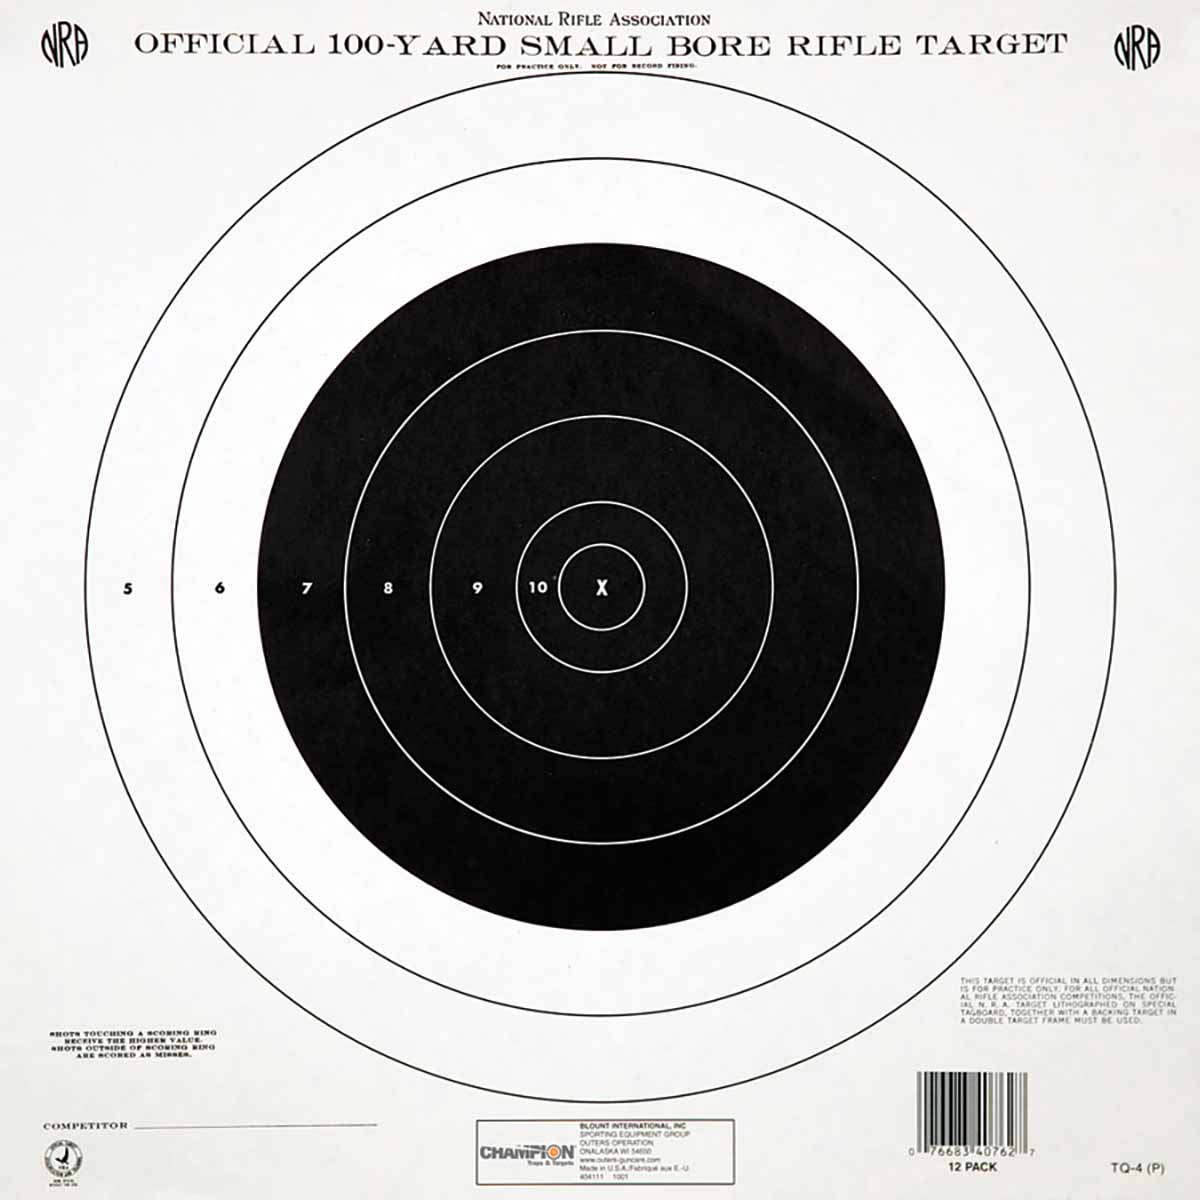 Score Keeper Targets (12-Pack)